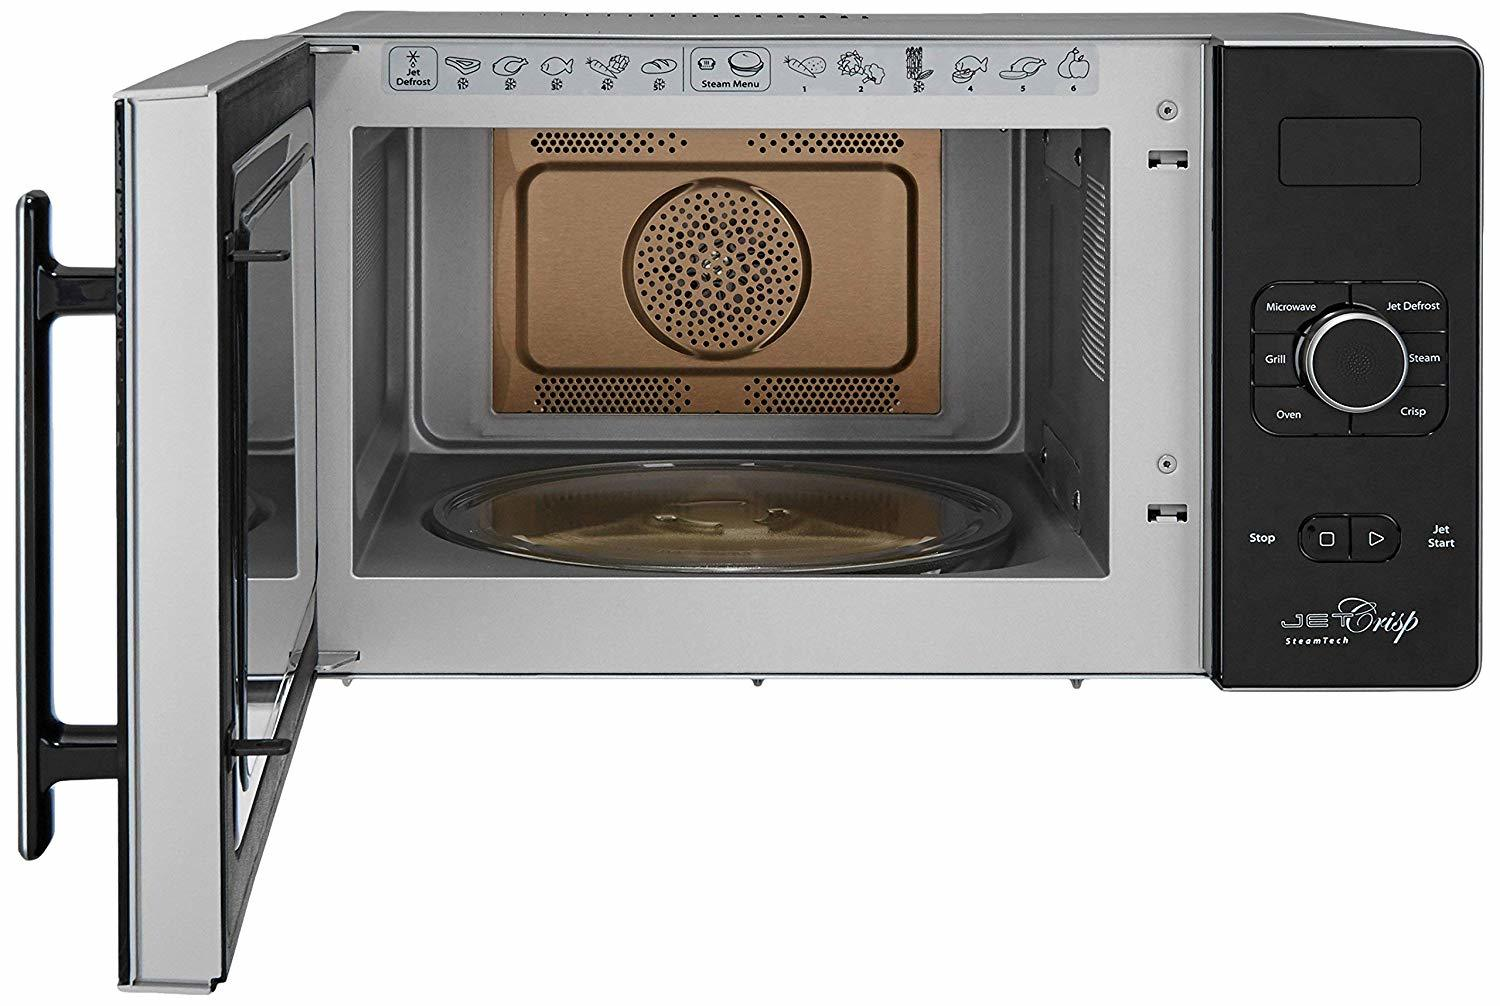 Whirlpool 25 L Convection Microwave Oven (25L CRISP STEAM CONV. MW OVEN-MS, Black)